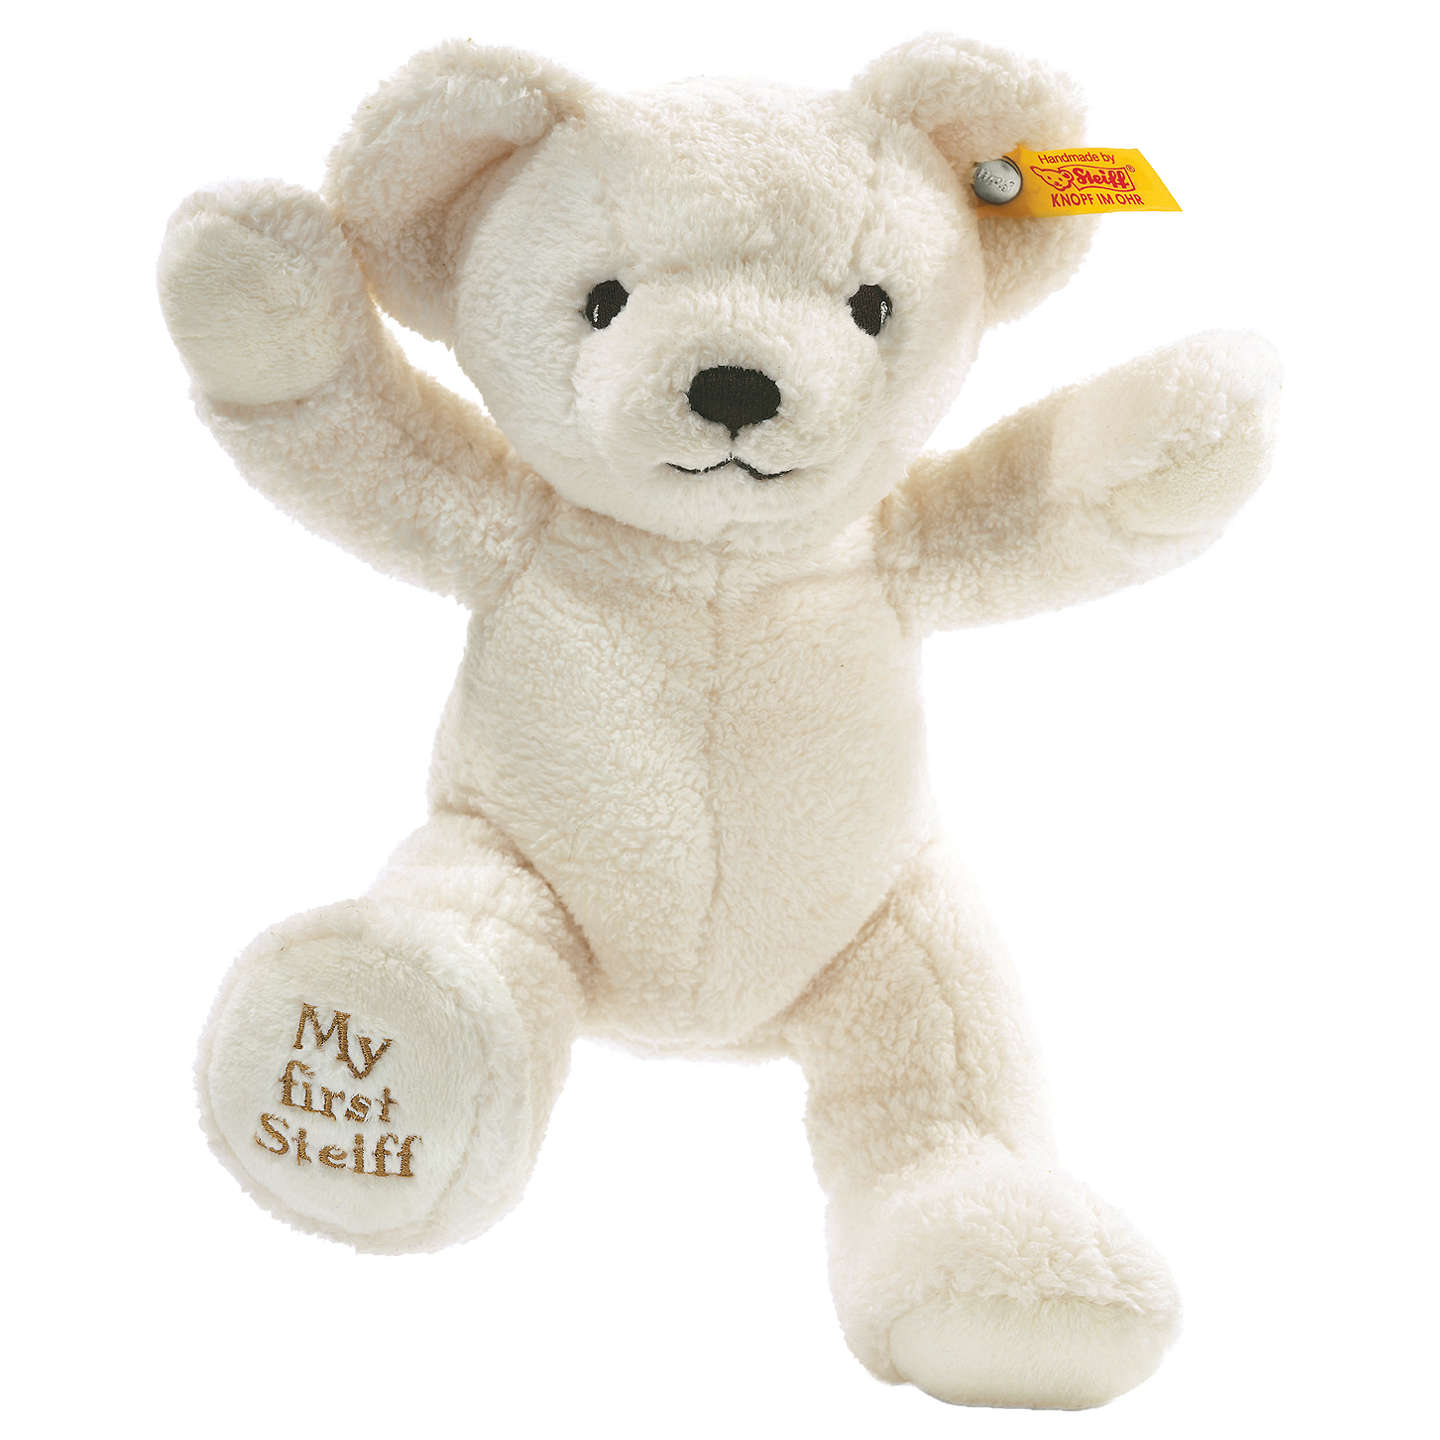 BuySteiff My First Teddy Bear, Blond Online at johnlewis.com